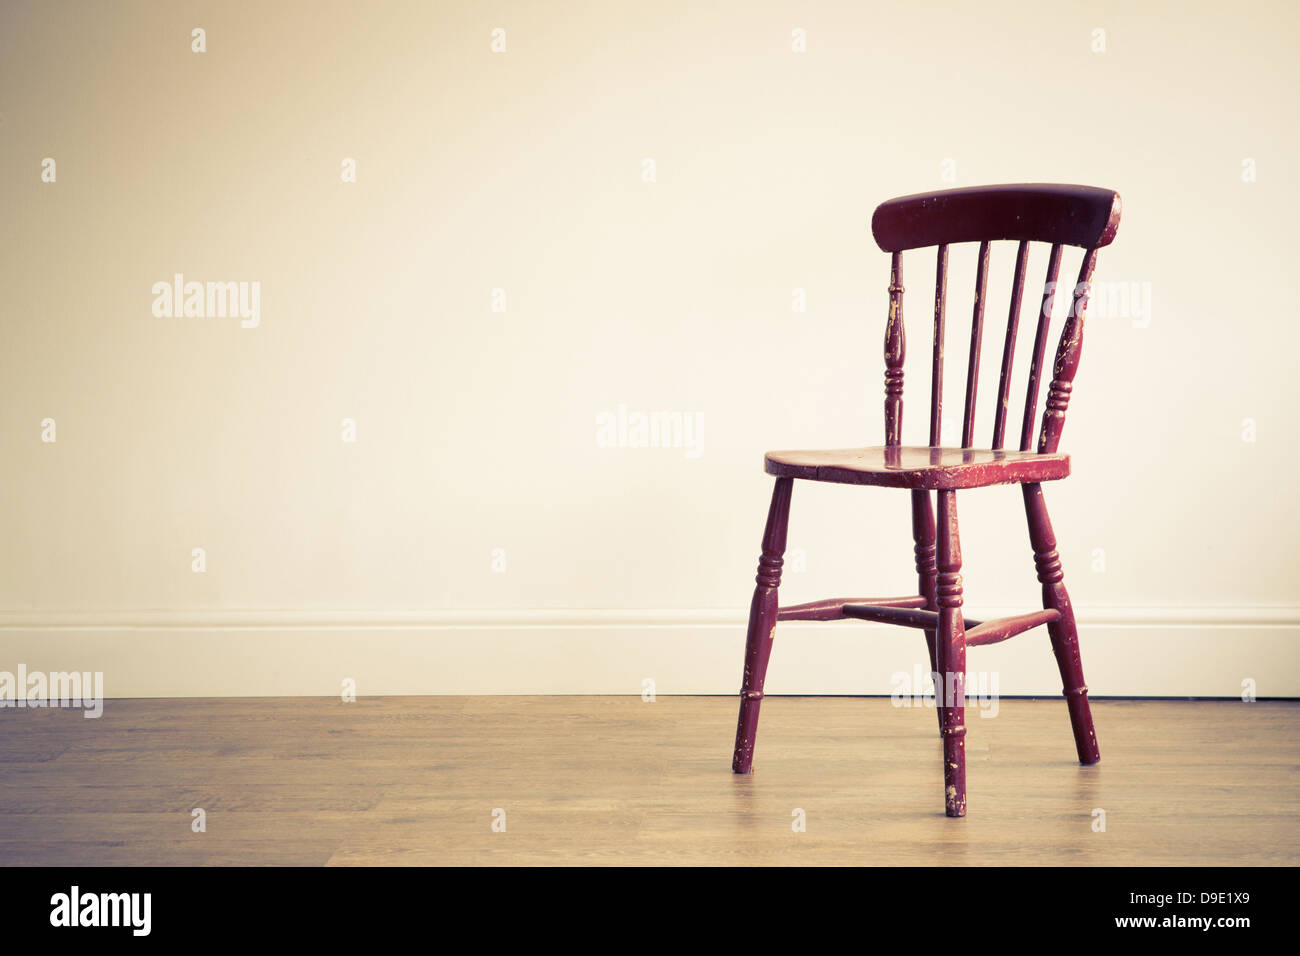 A Single Wooden Chair Placed In An Empty Room